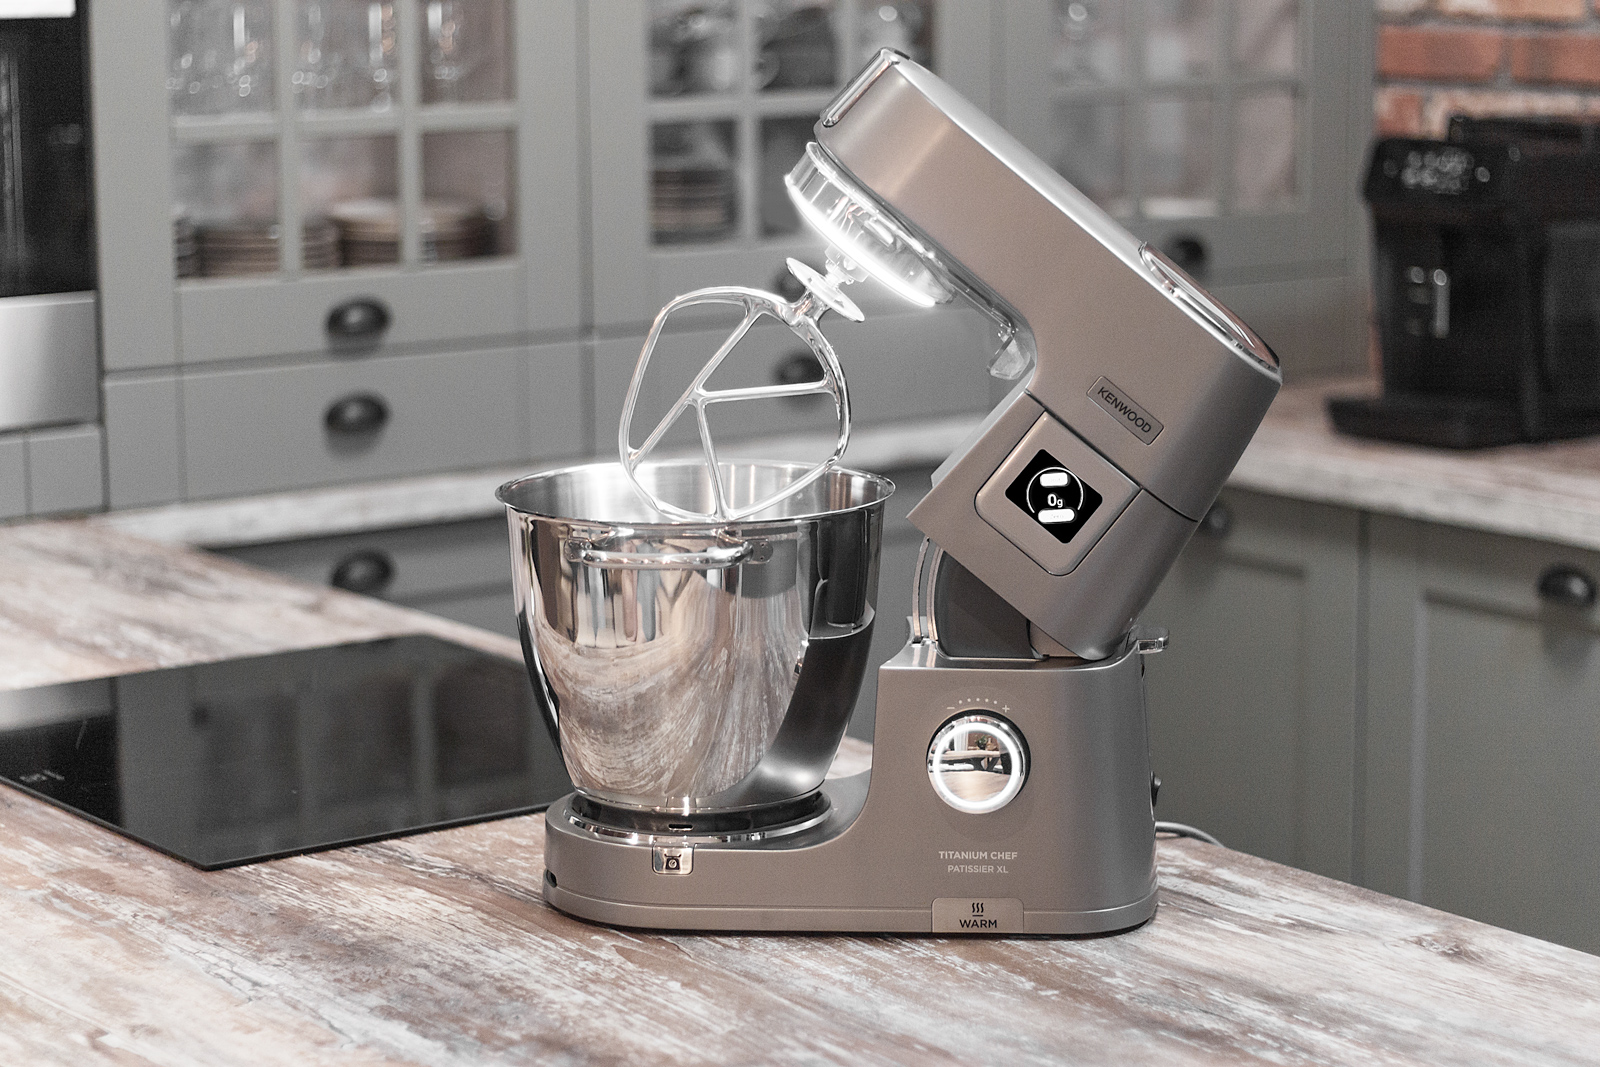 recenzja kenwood titanum chef patissier xl